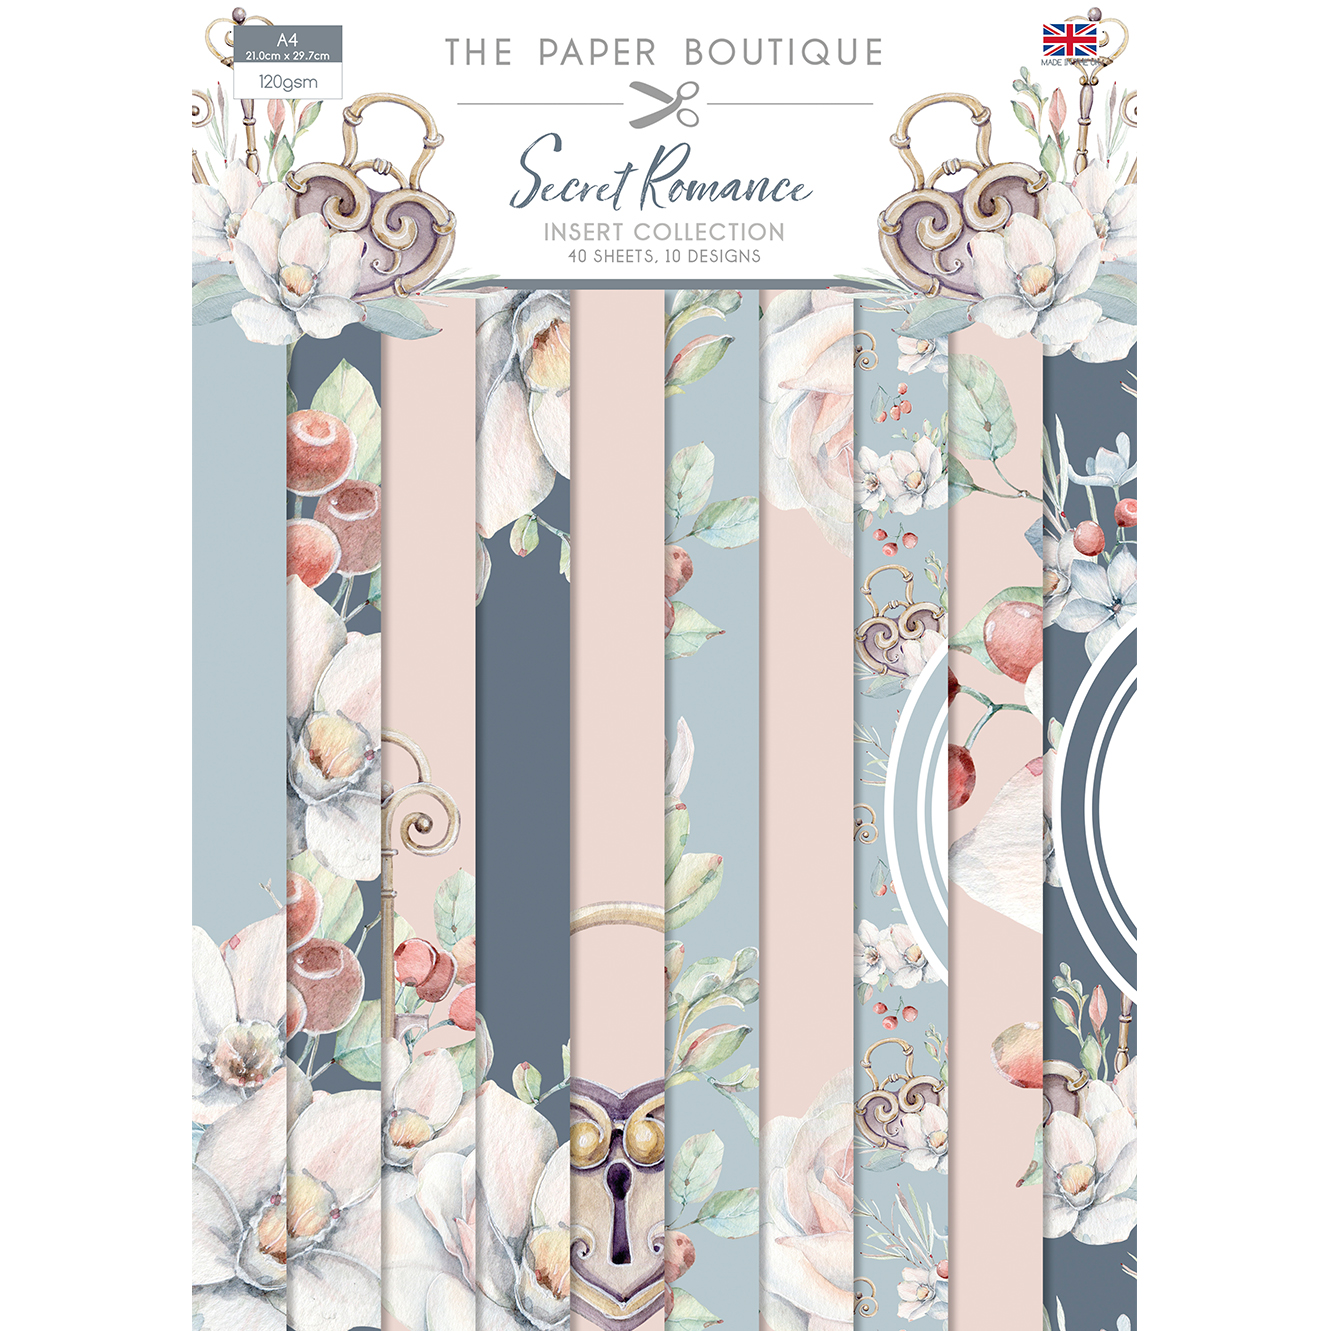 The Paper Boutique Secret Romance Insert Collection